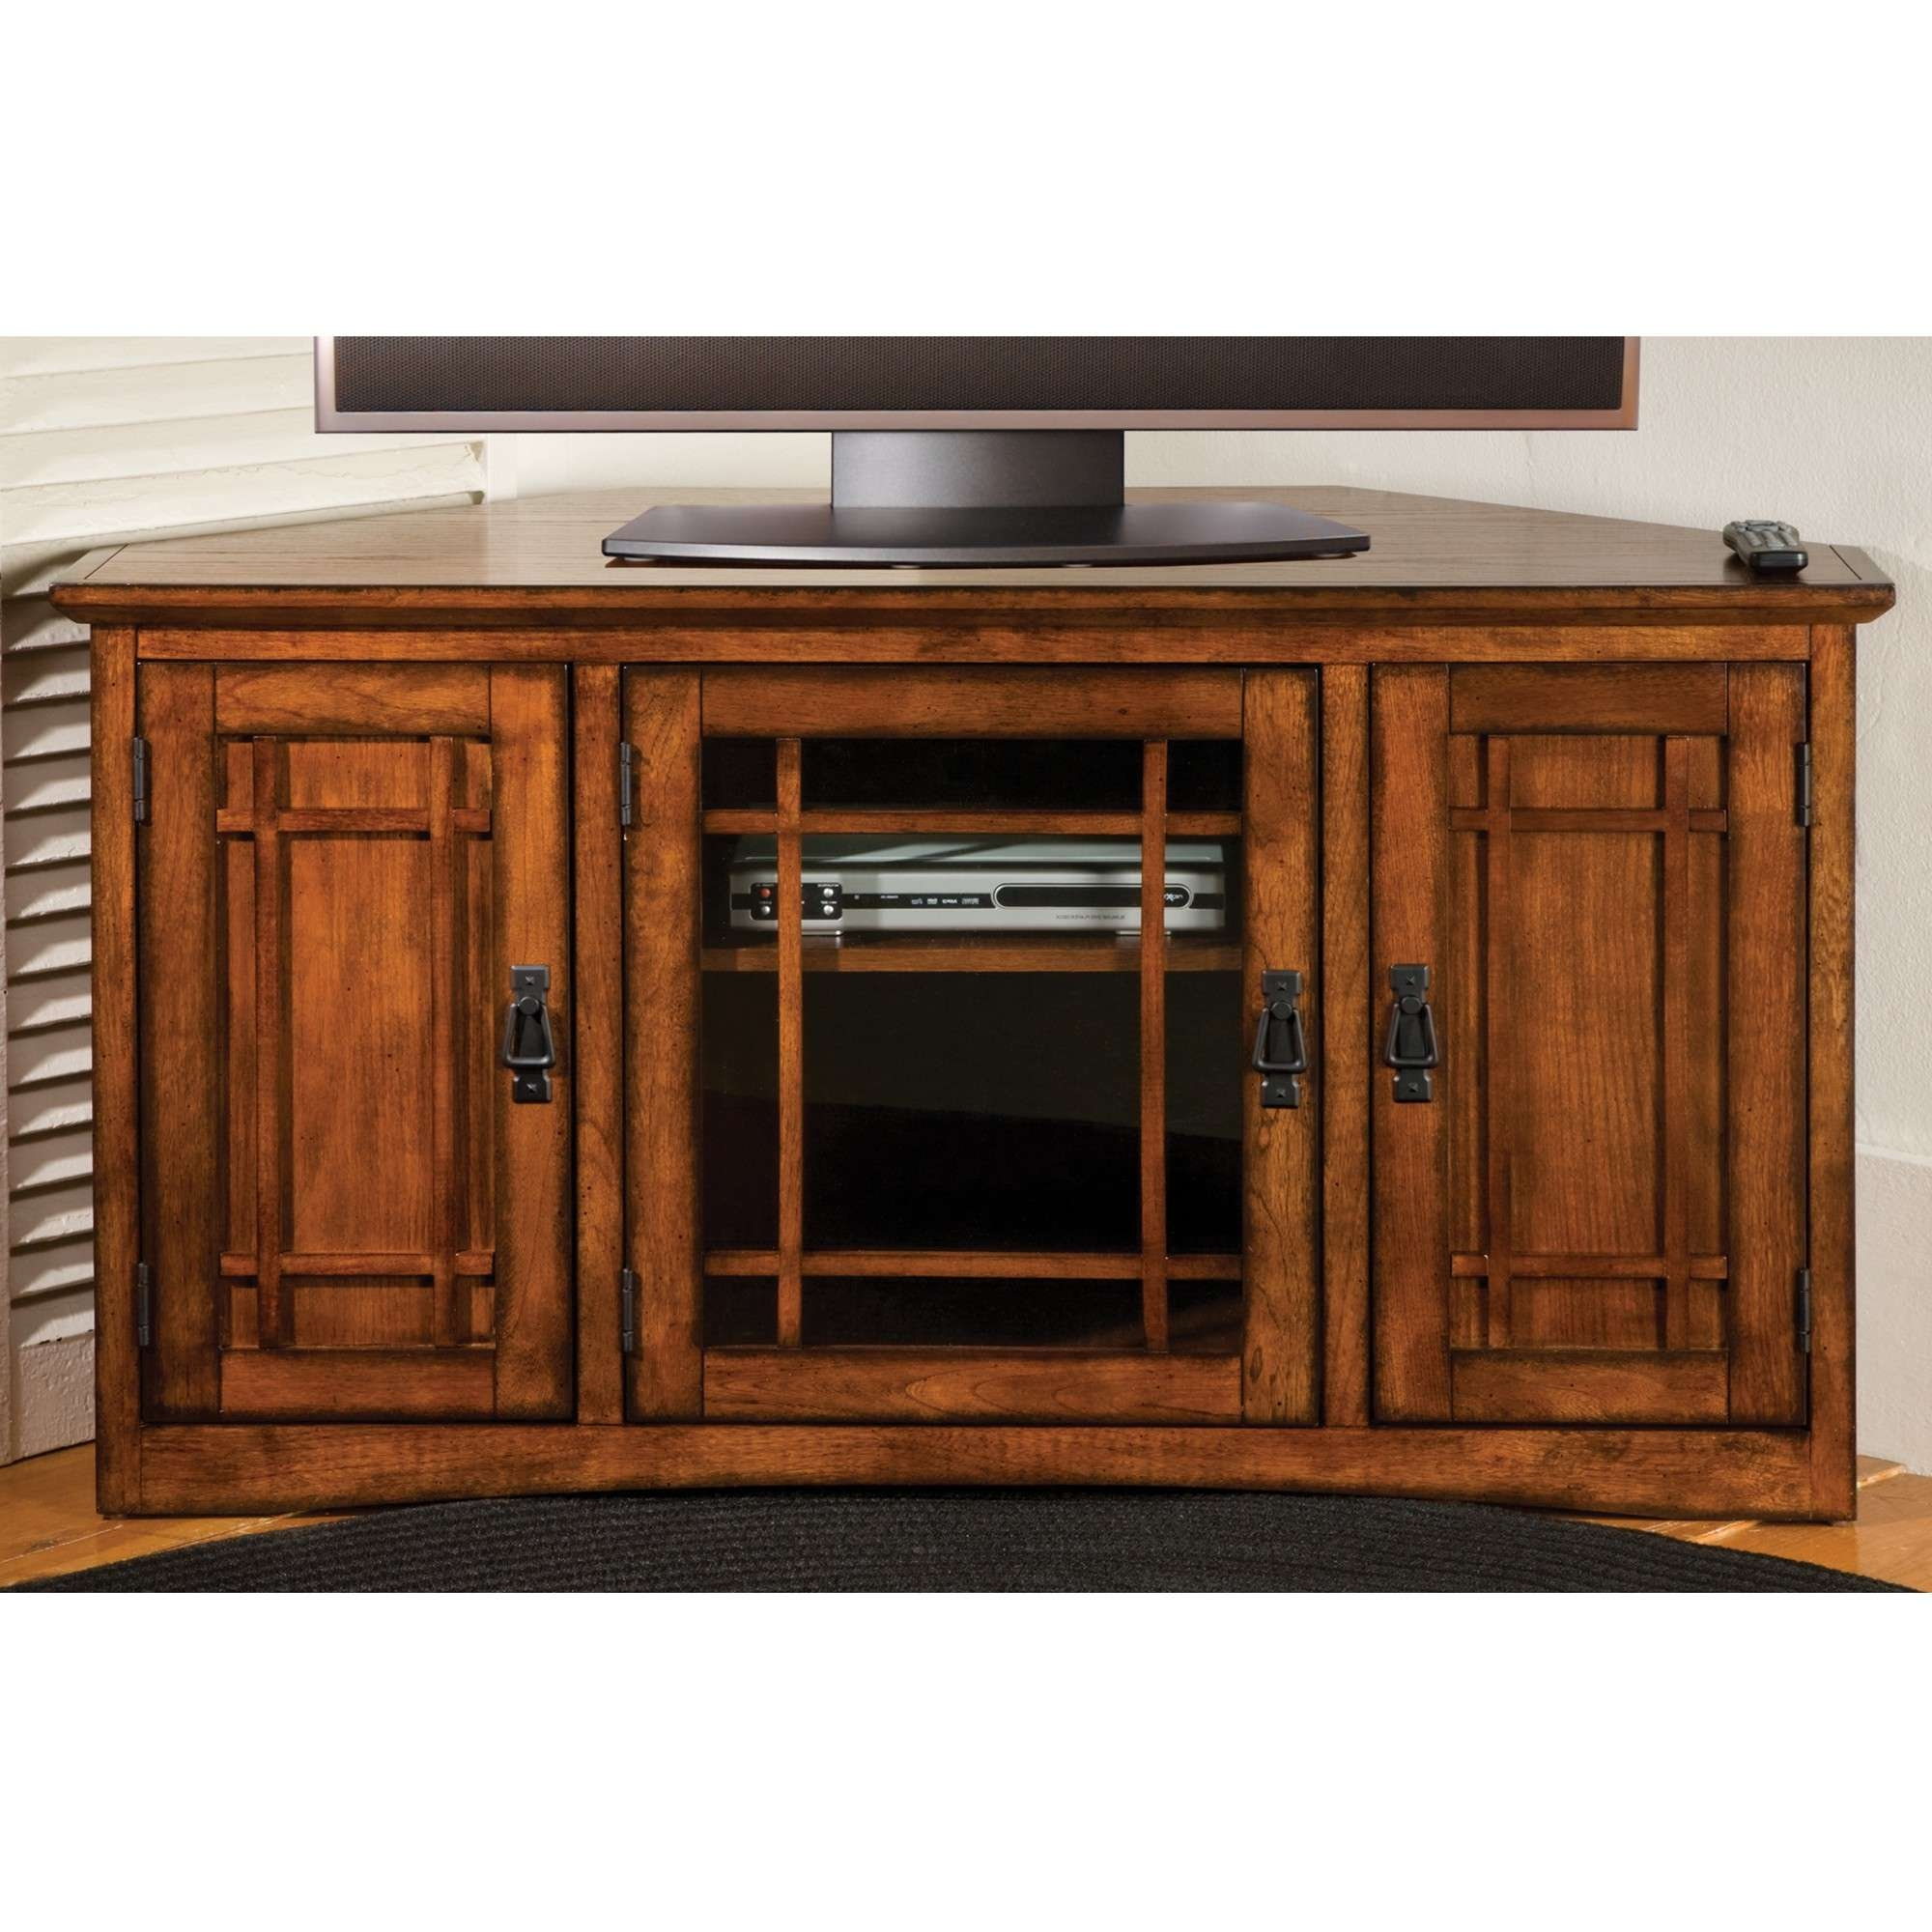 Mission Corner Tv Cabinet | Sturbridge Yankee Workshop For Wooden Corner Tv Stands (View 15 of 15)